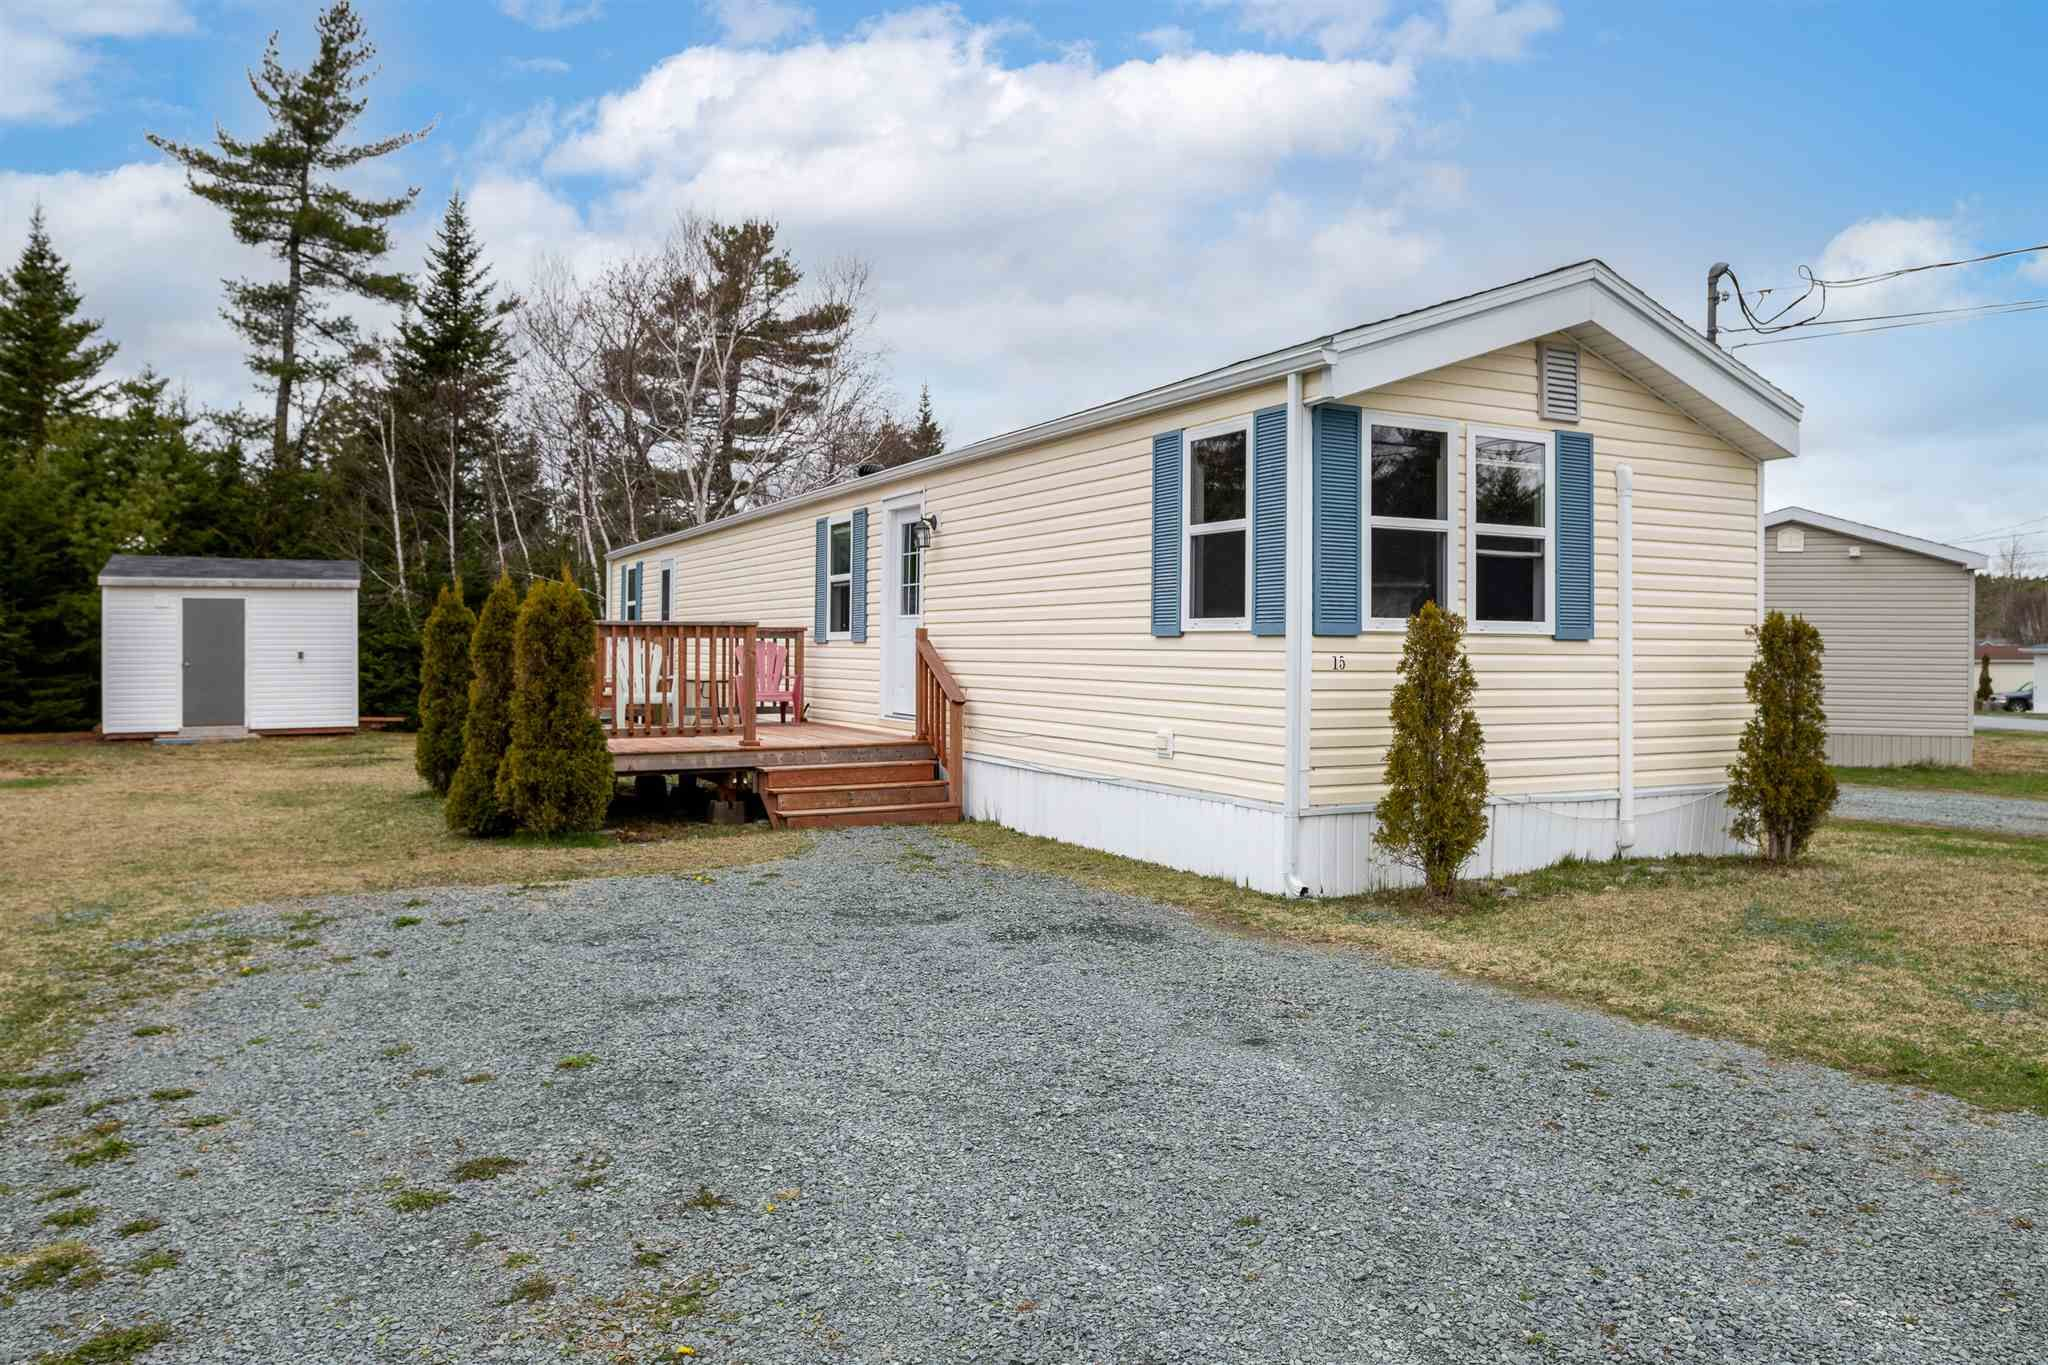 Main Photo: 15 Bumpy Lane in Lake Echo: 31-Lawrencetown, Lake Echo, Porters Lake Residential for sale (Halifax-Dartmouth)  : MLS®# 202110041